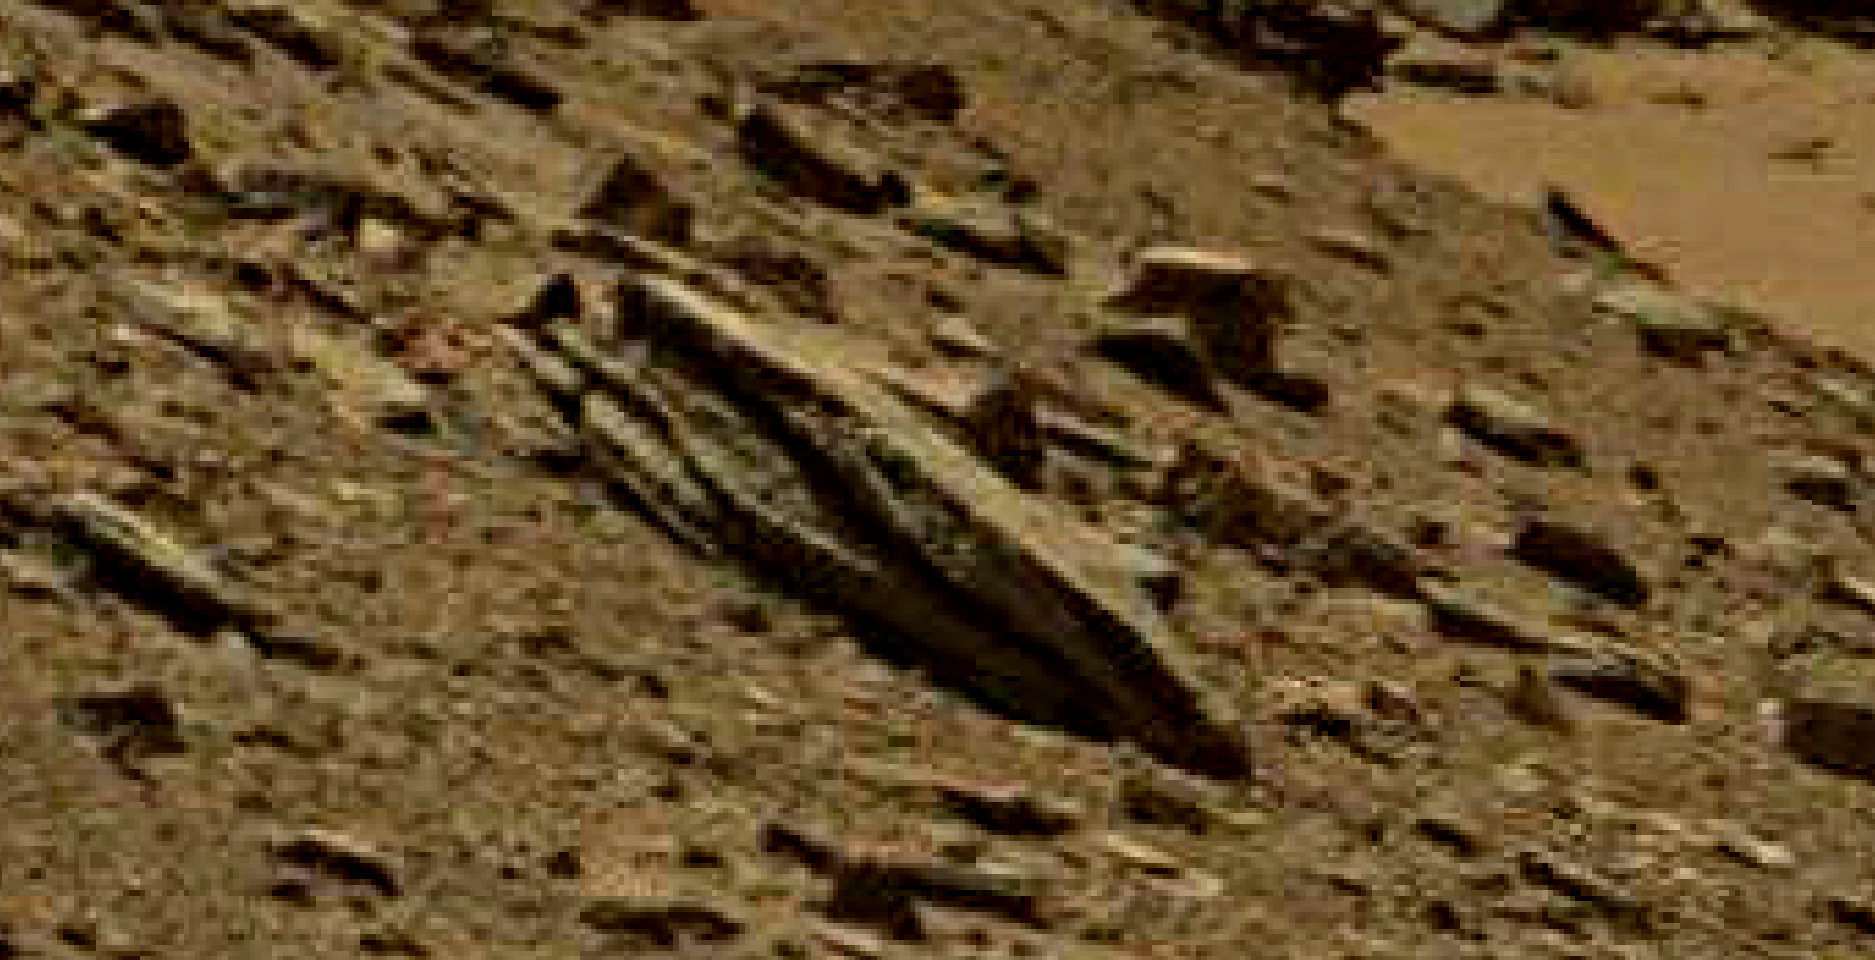 mars sol 1434 anomaly artifacts 1 was life on mars